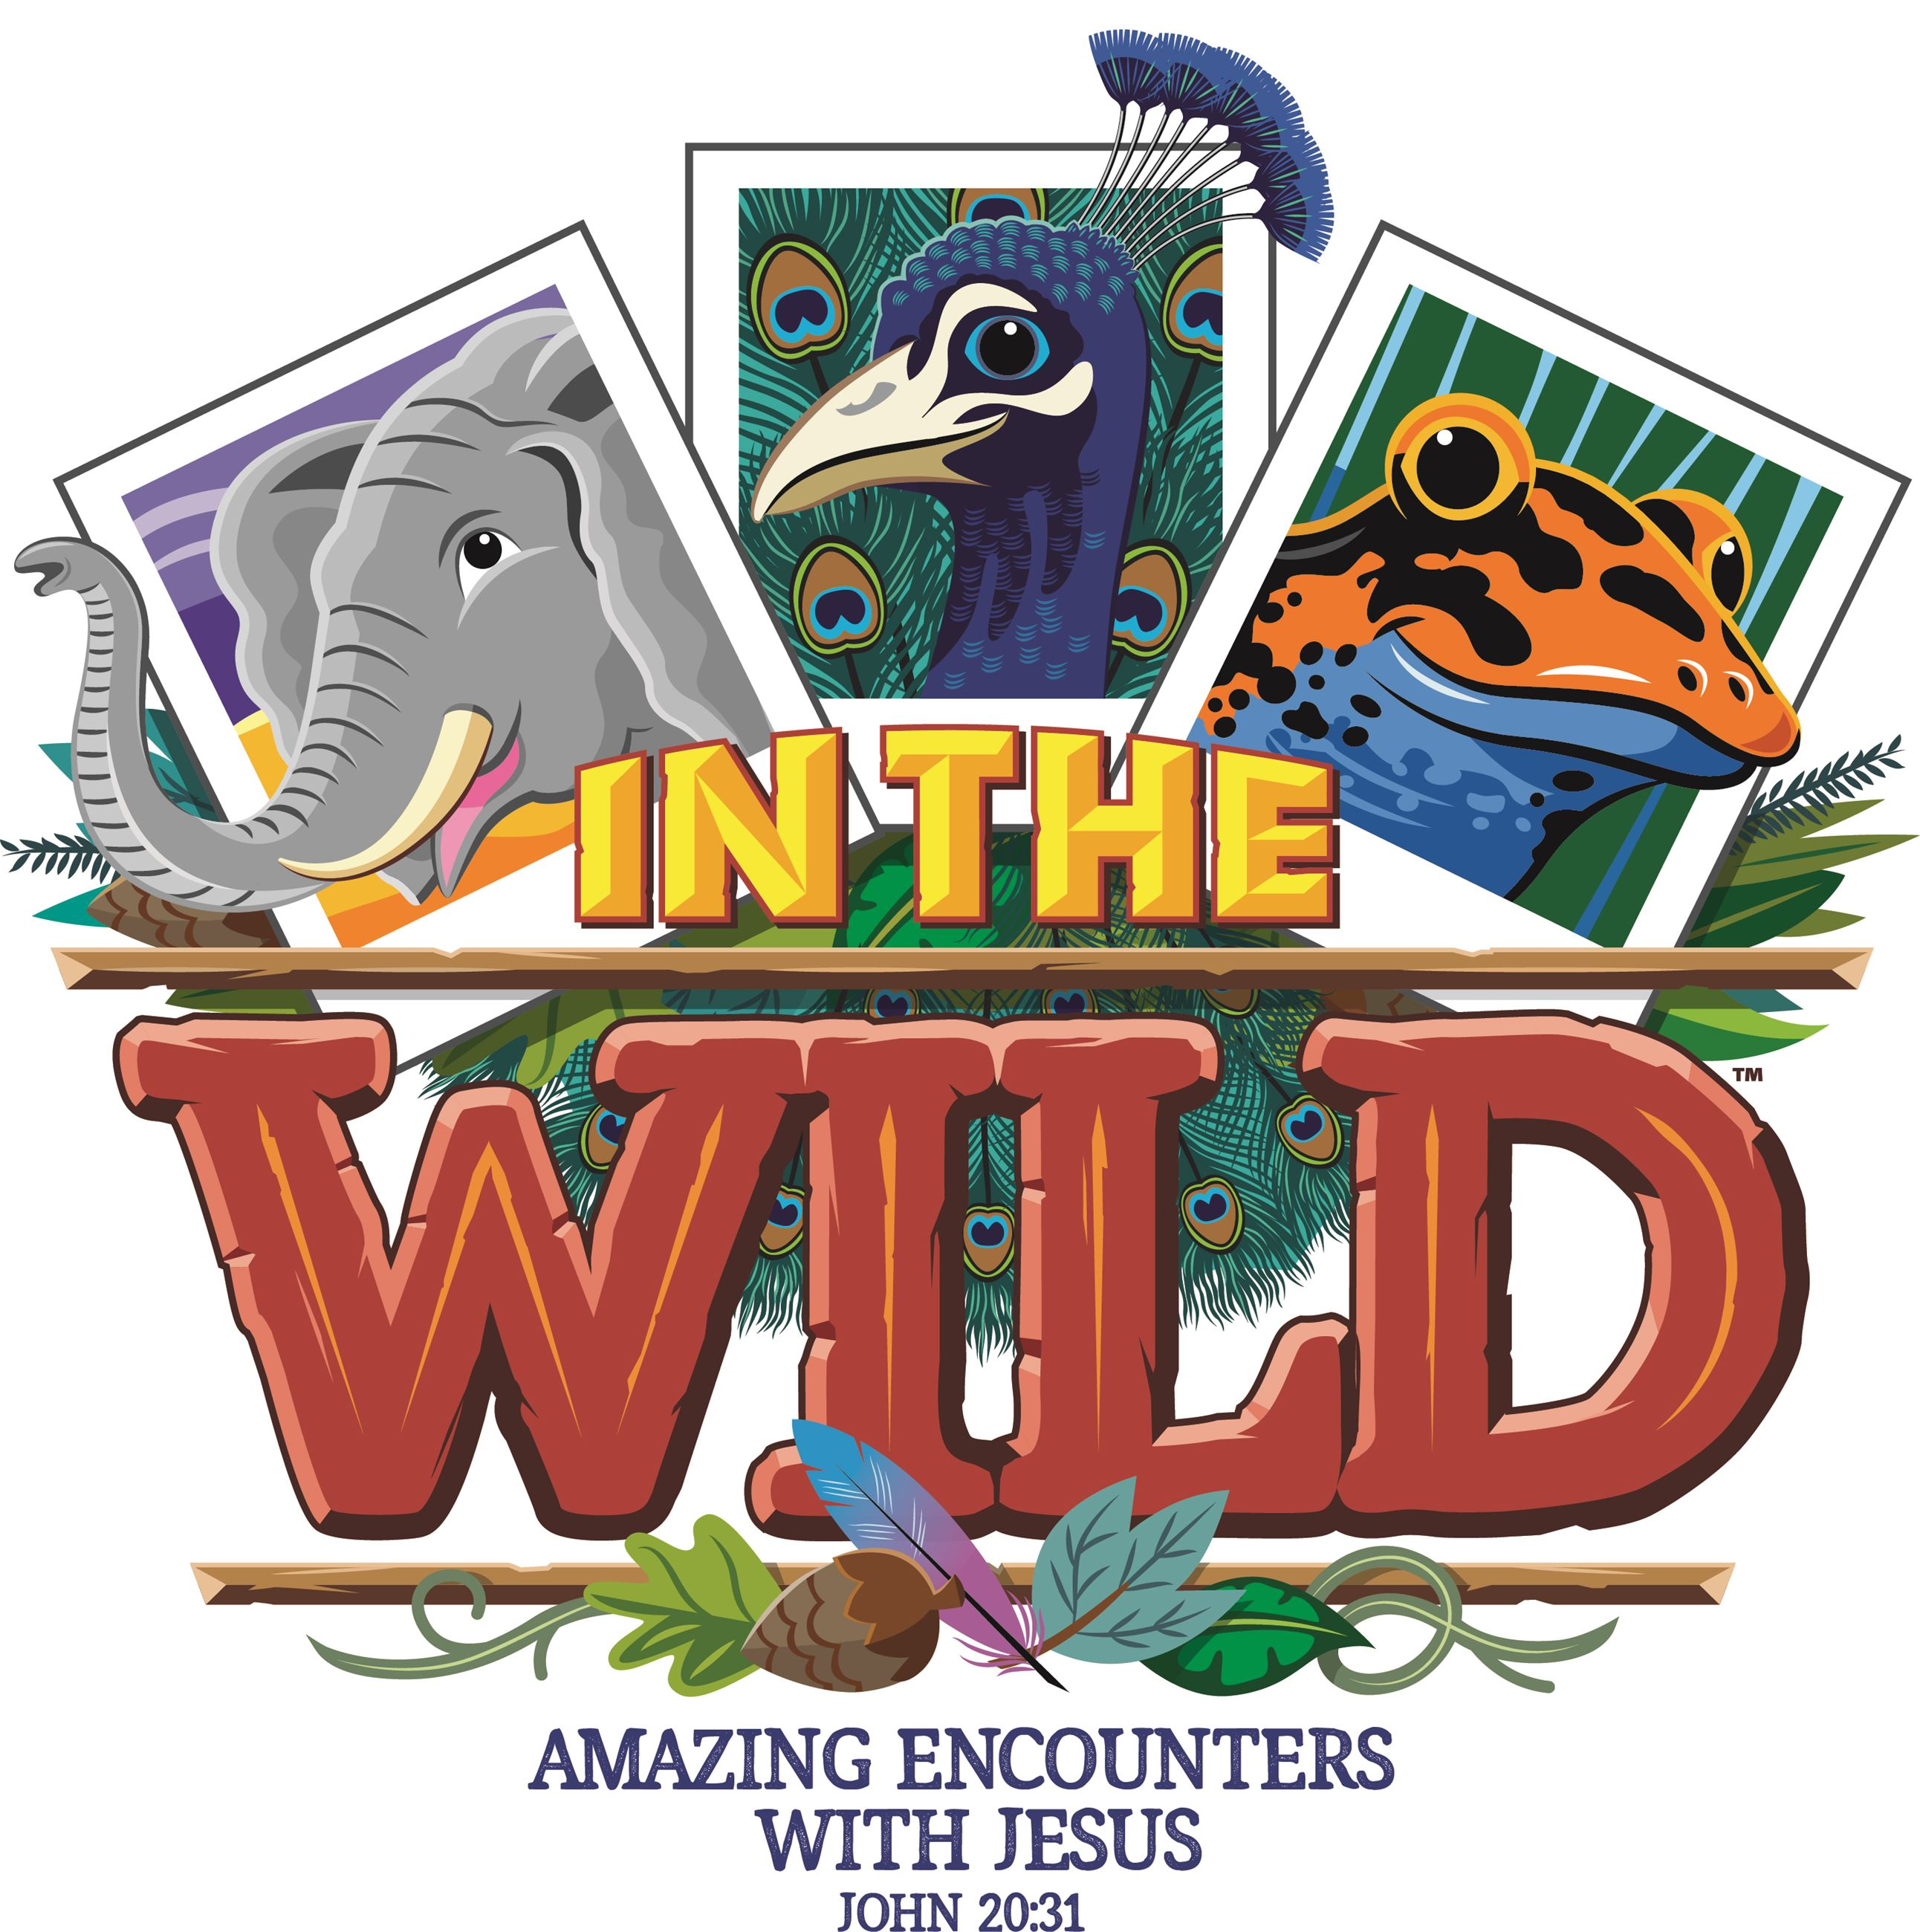 First Baptist Church; Vacation Bible School; In the Wild; Amazing Encounters with Jesus; John 20:31;